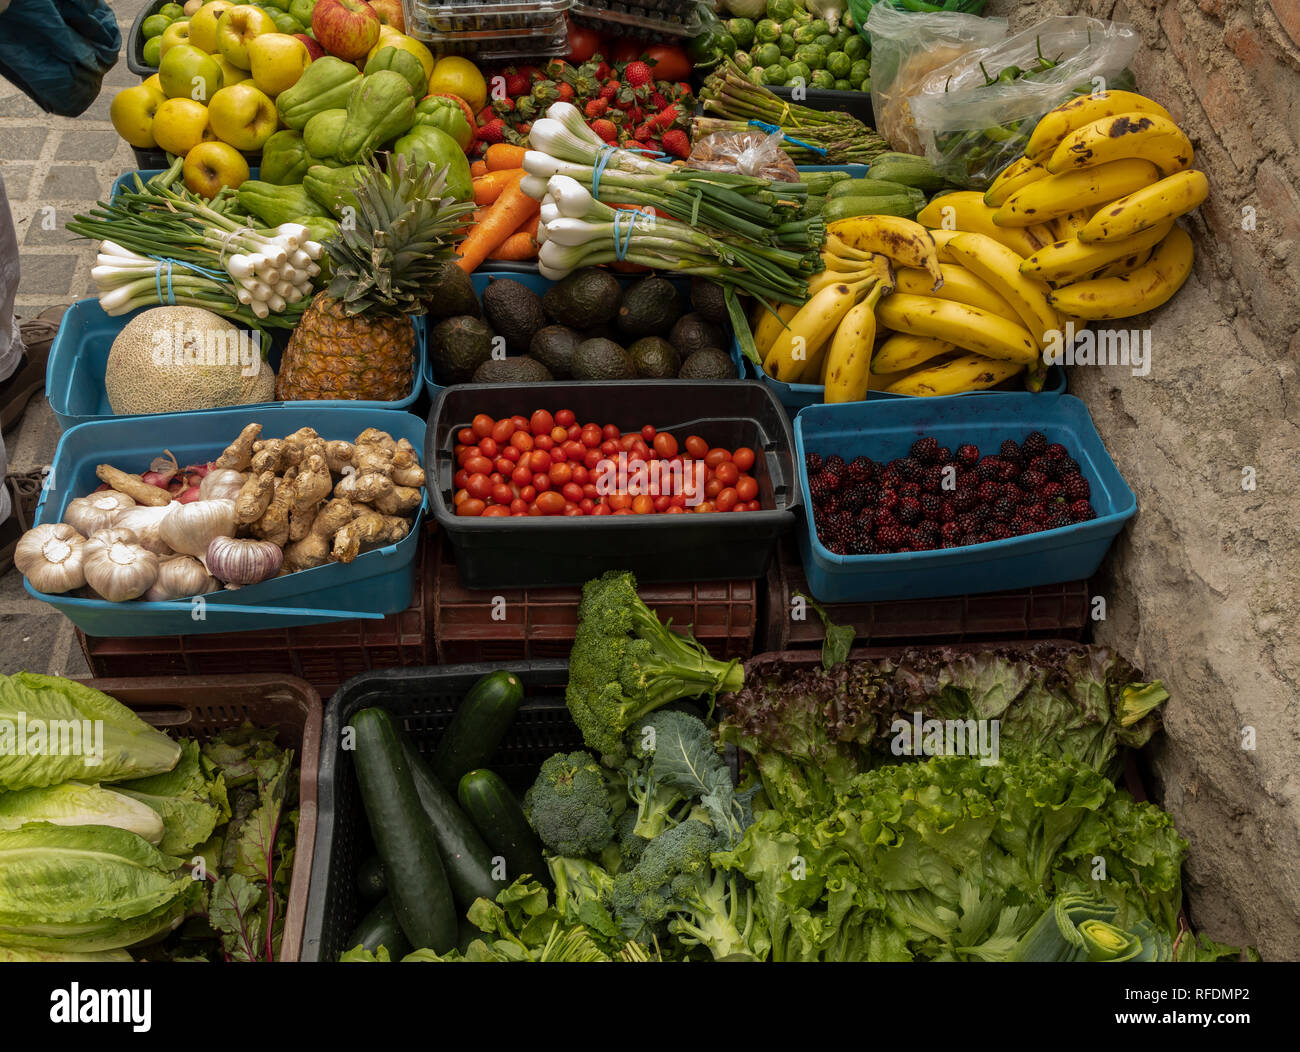 Produce in a small organic market stall, in San Miguel de Allende, central Mexico. - Stock Image